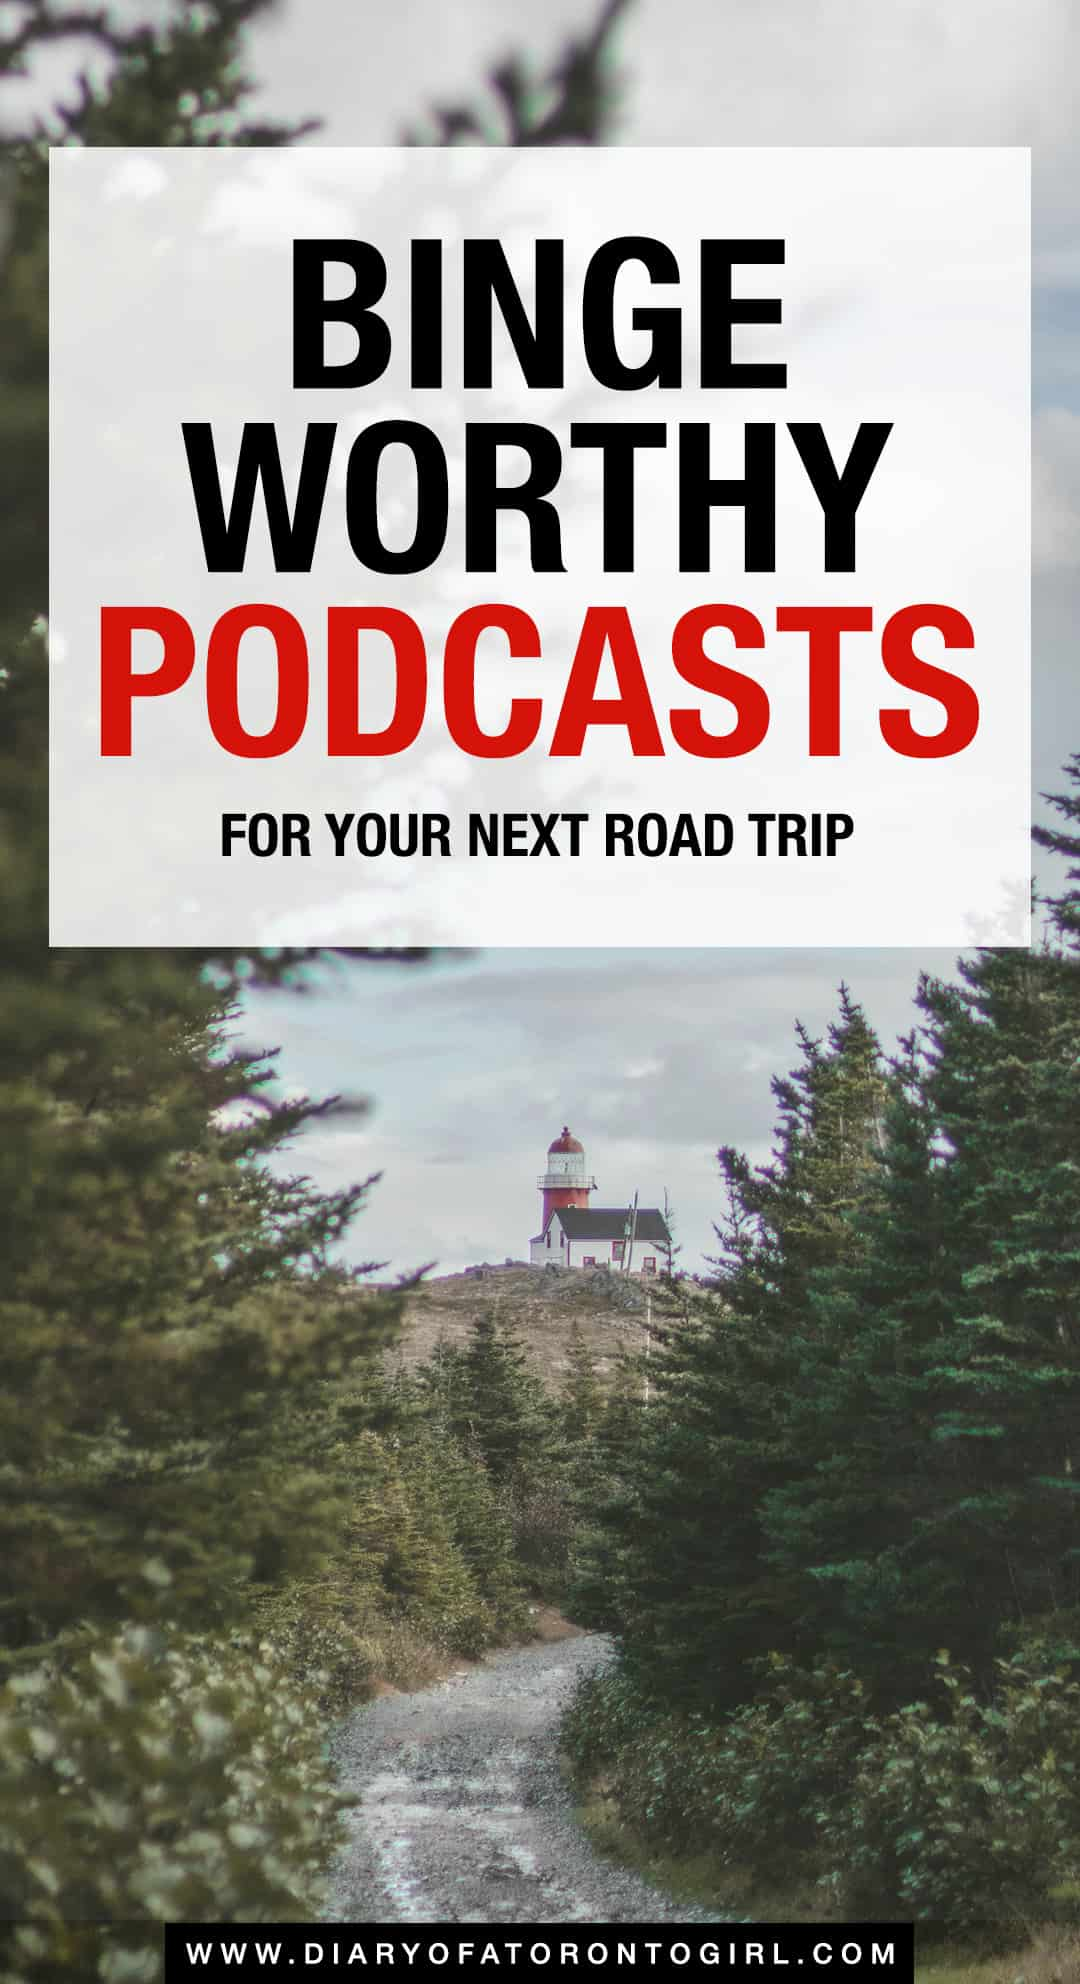 Some of the best podcasts to listen to during your next road trip! Whether you're driving for 2 short hours or 7 long hours, here are binge-worthy podcasts worth listening to make your drive more enjoyable.